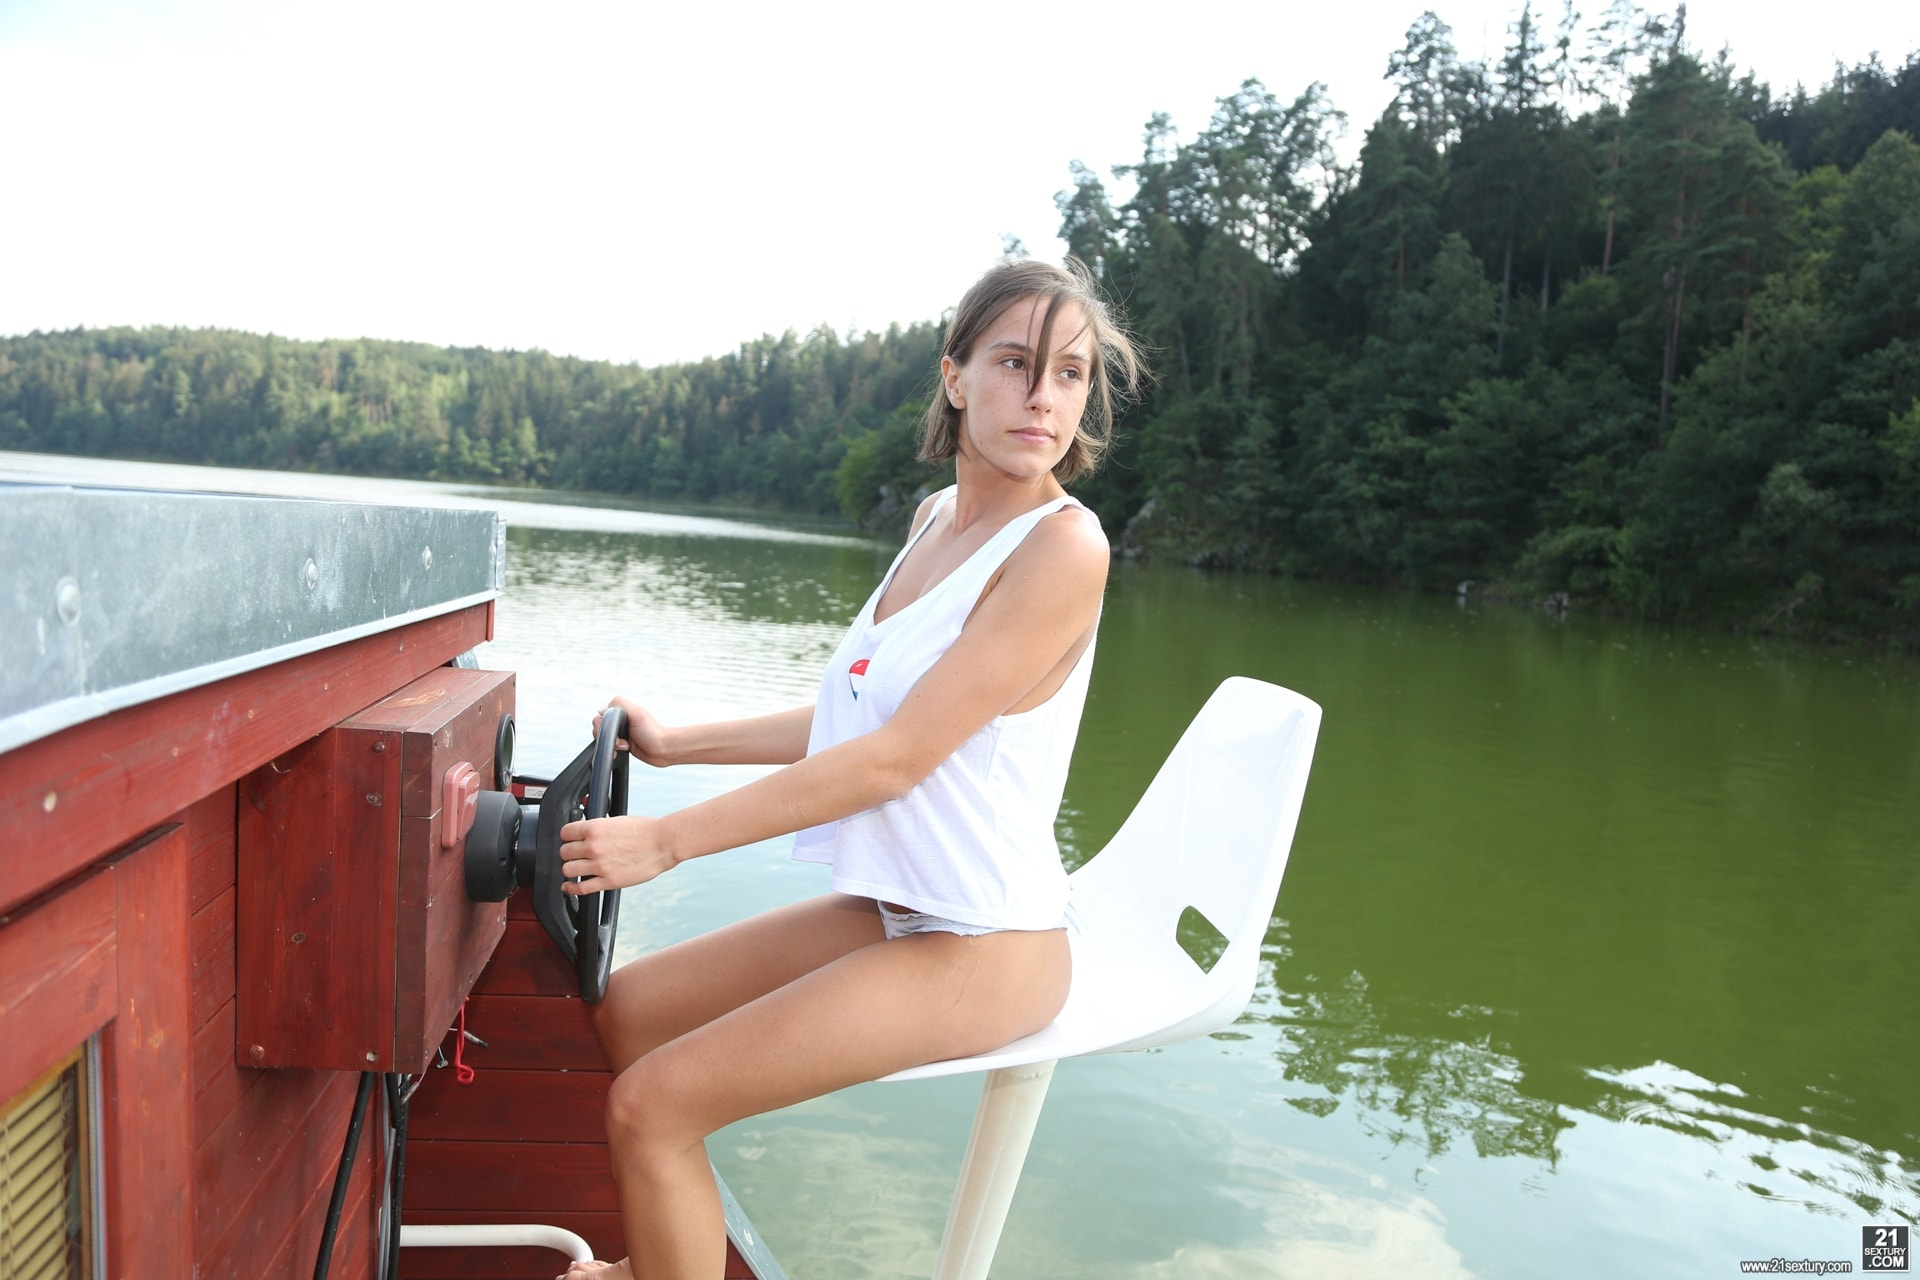 21Sextury 'Lady Of The Lake' starring Anabelle (Photo 1)